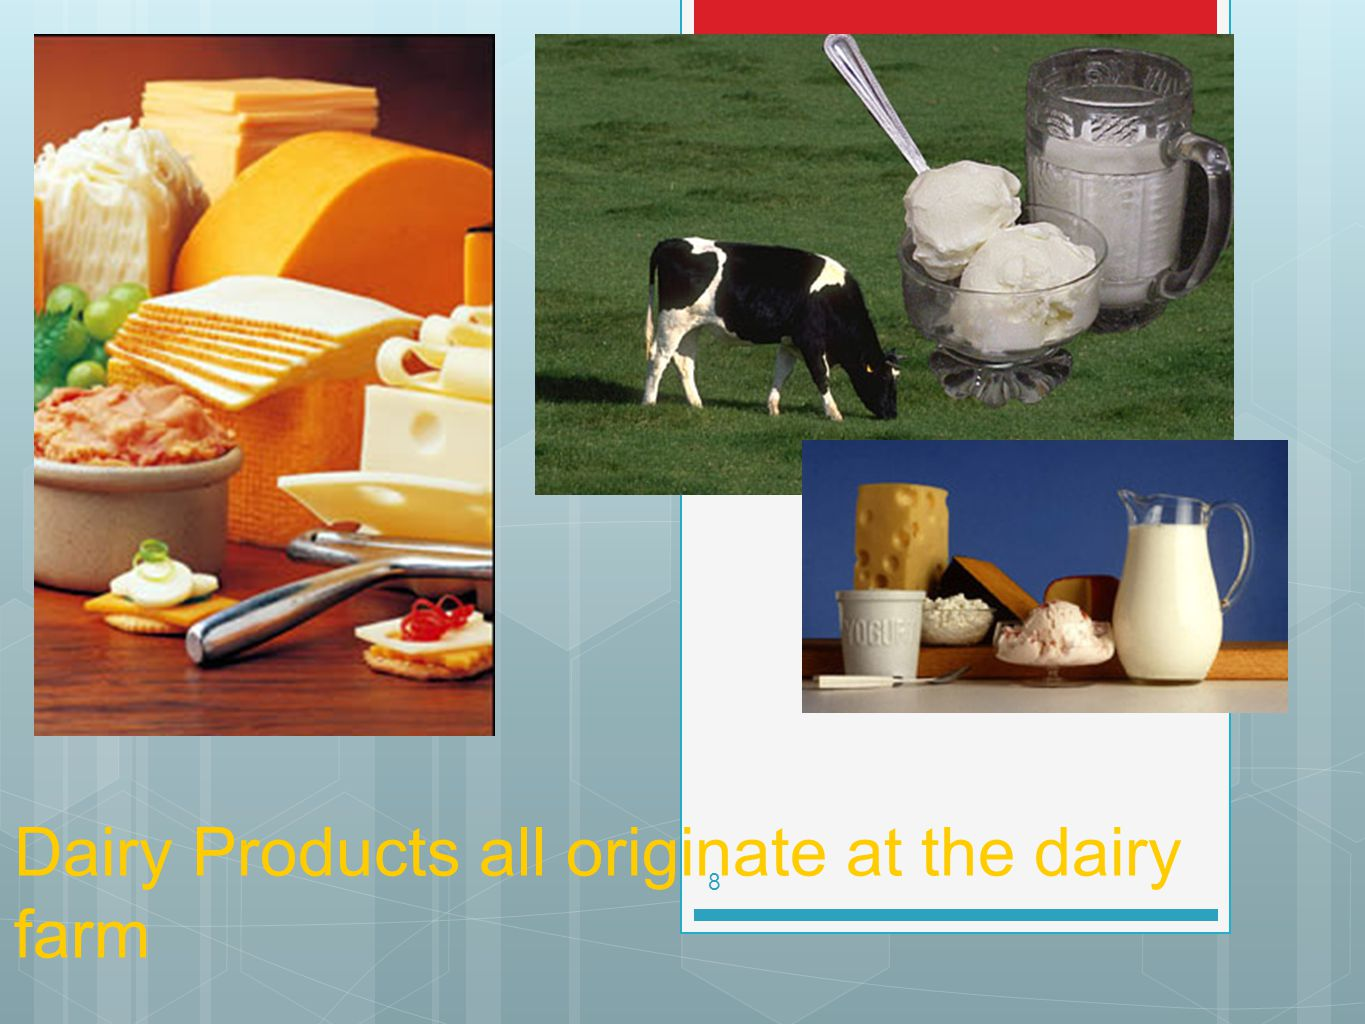 Dairy Products all originate at the dairy farm